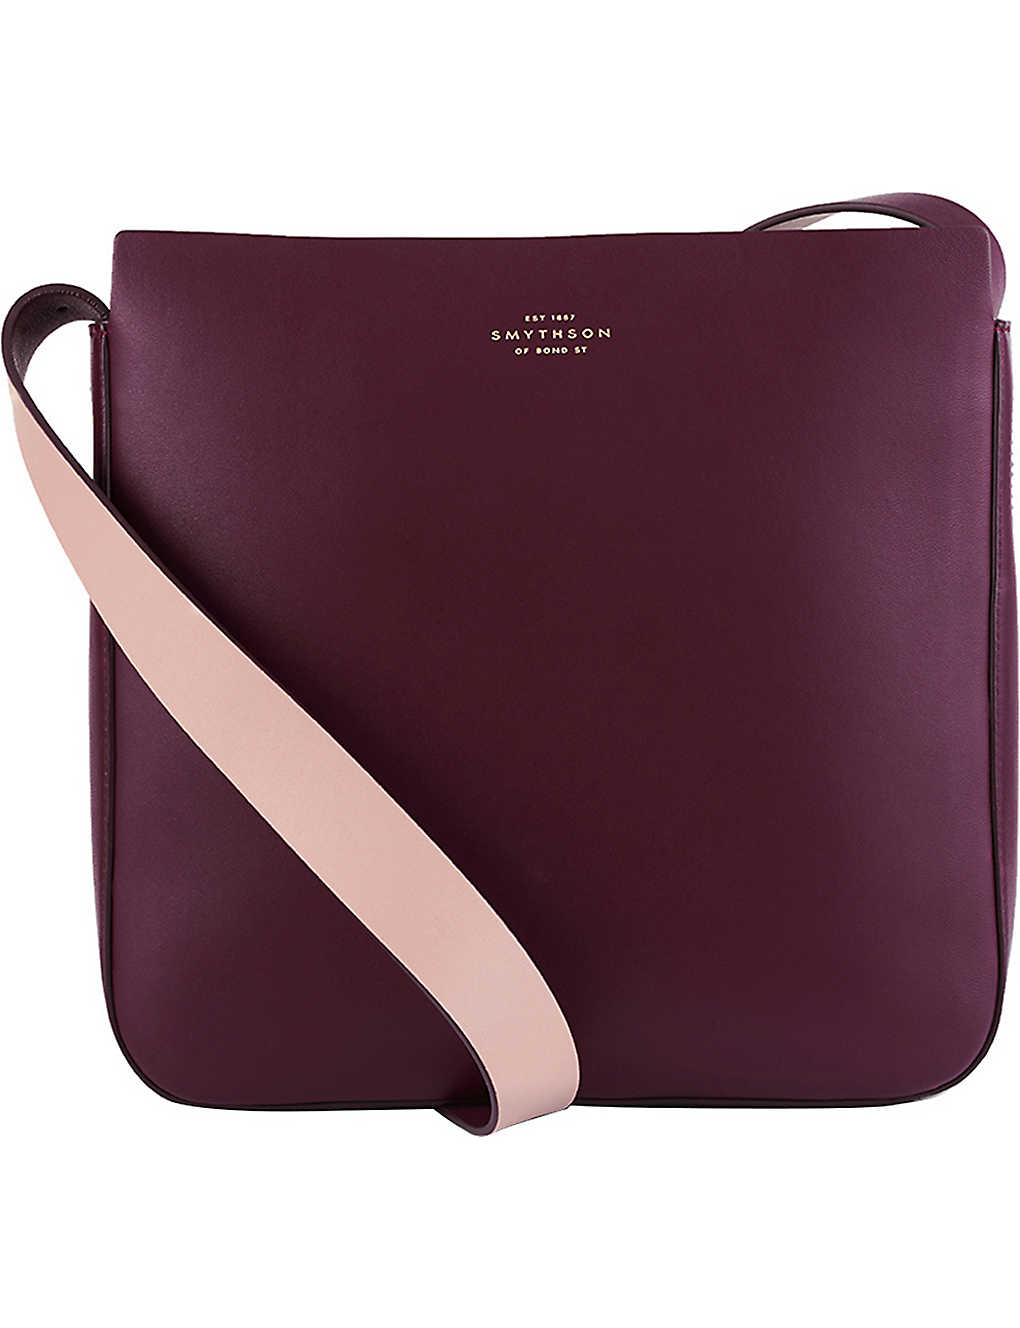 Bag Cross Leather Compton Smythson Body 0wq8zxaZB